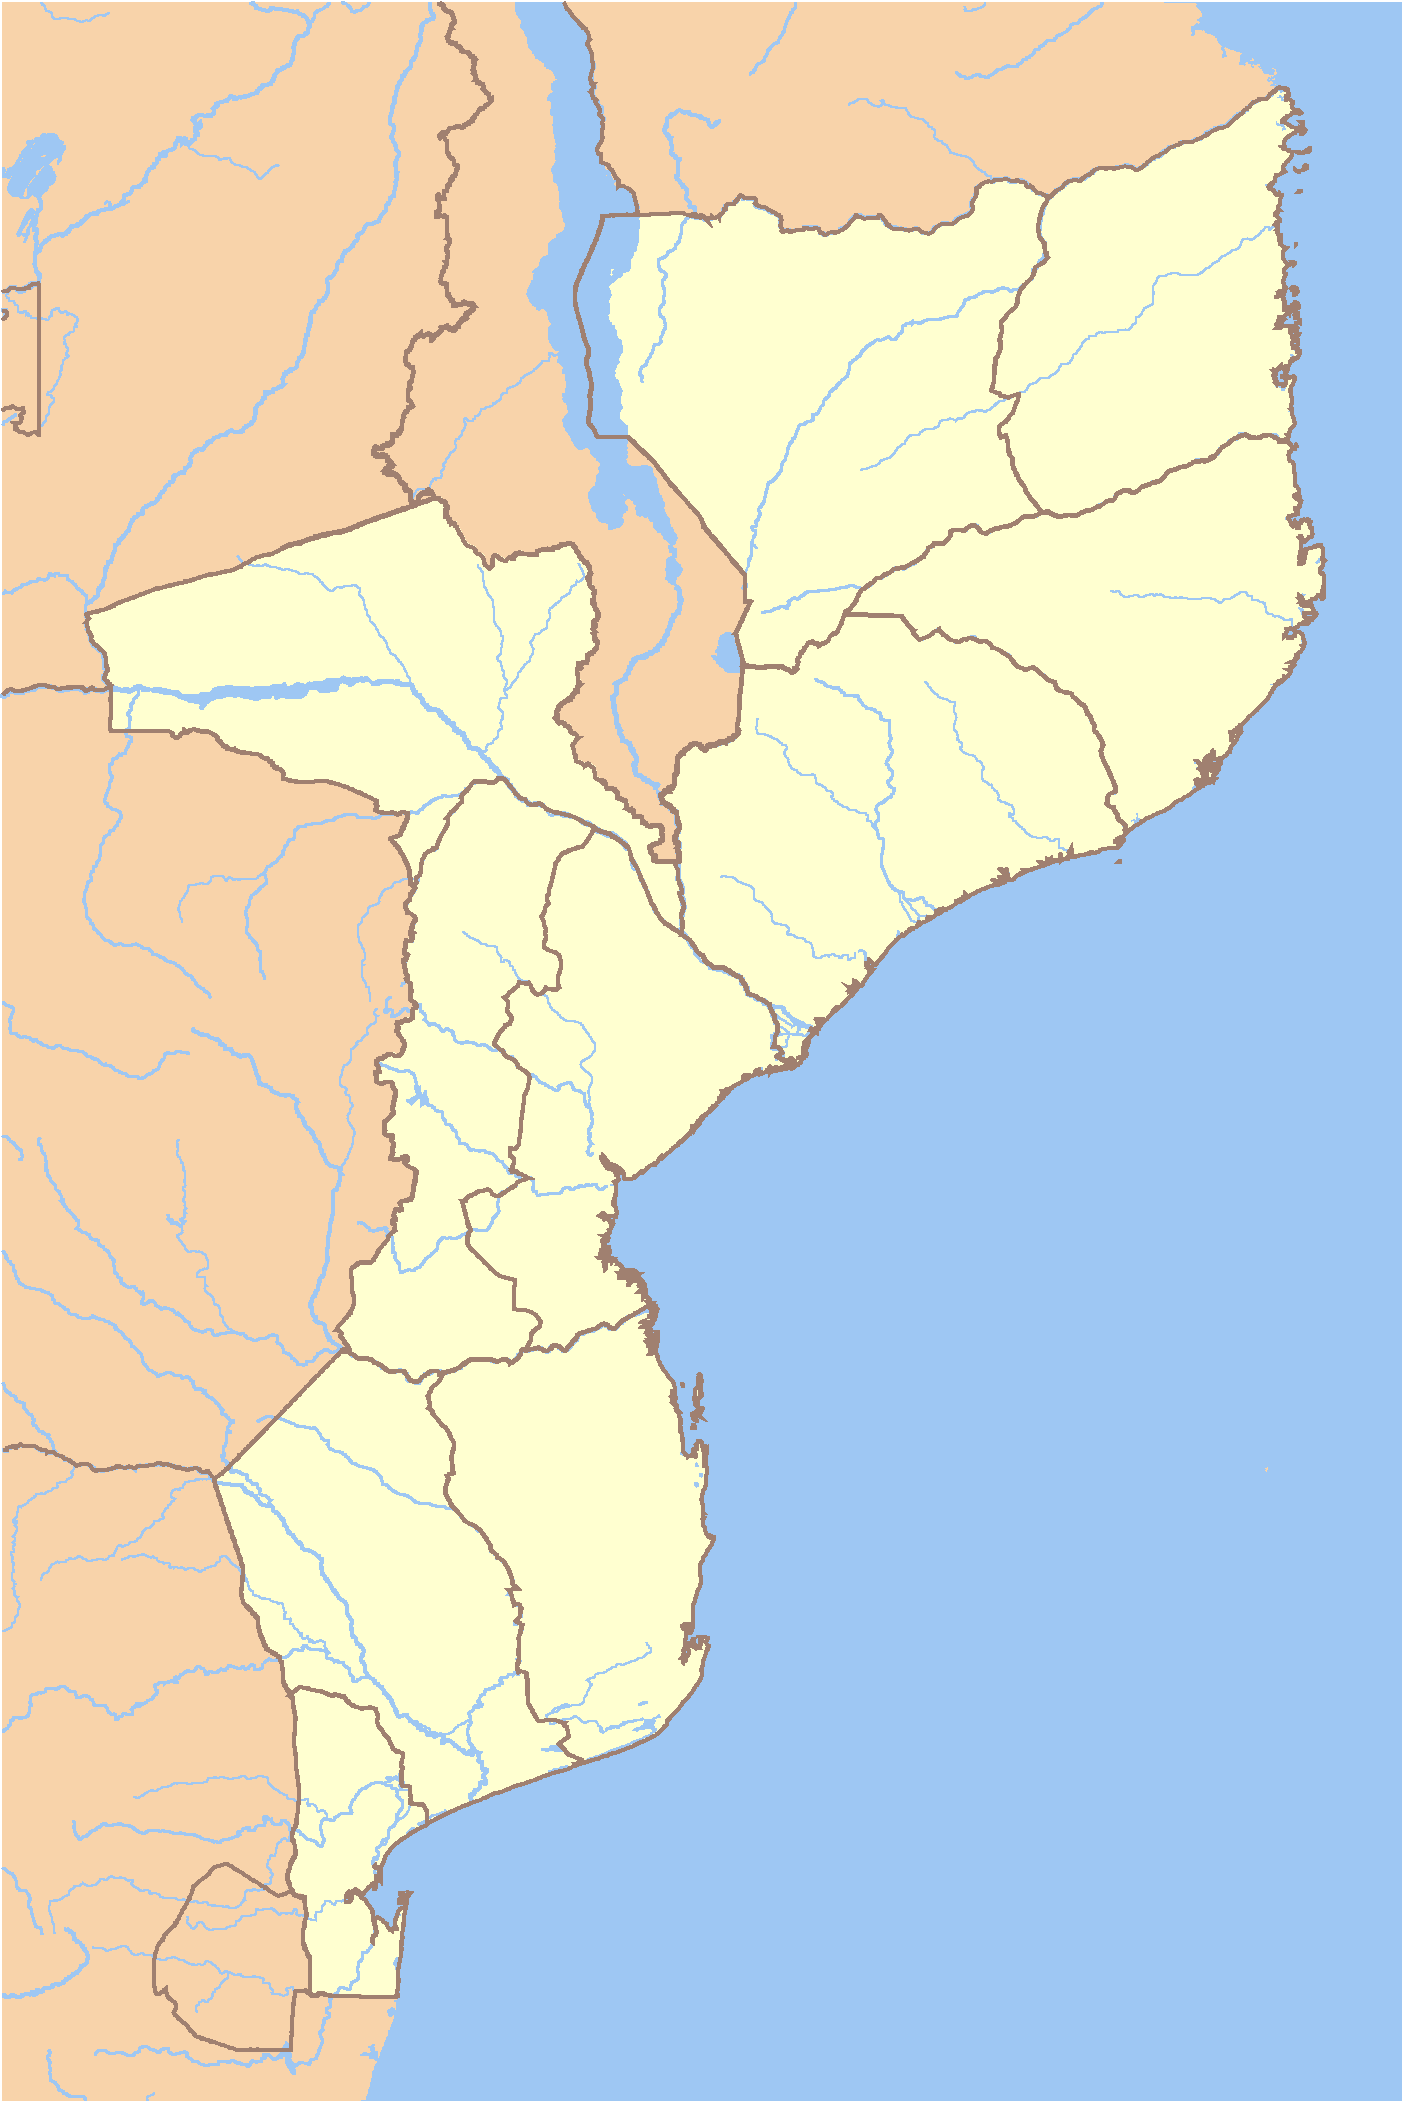 Mozambique Locator large map